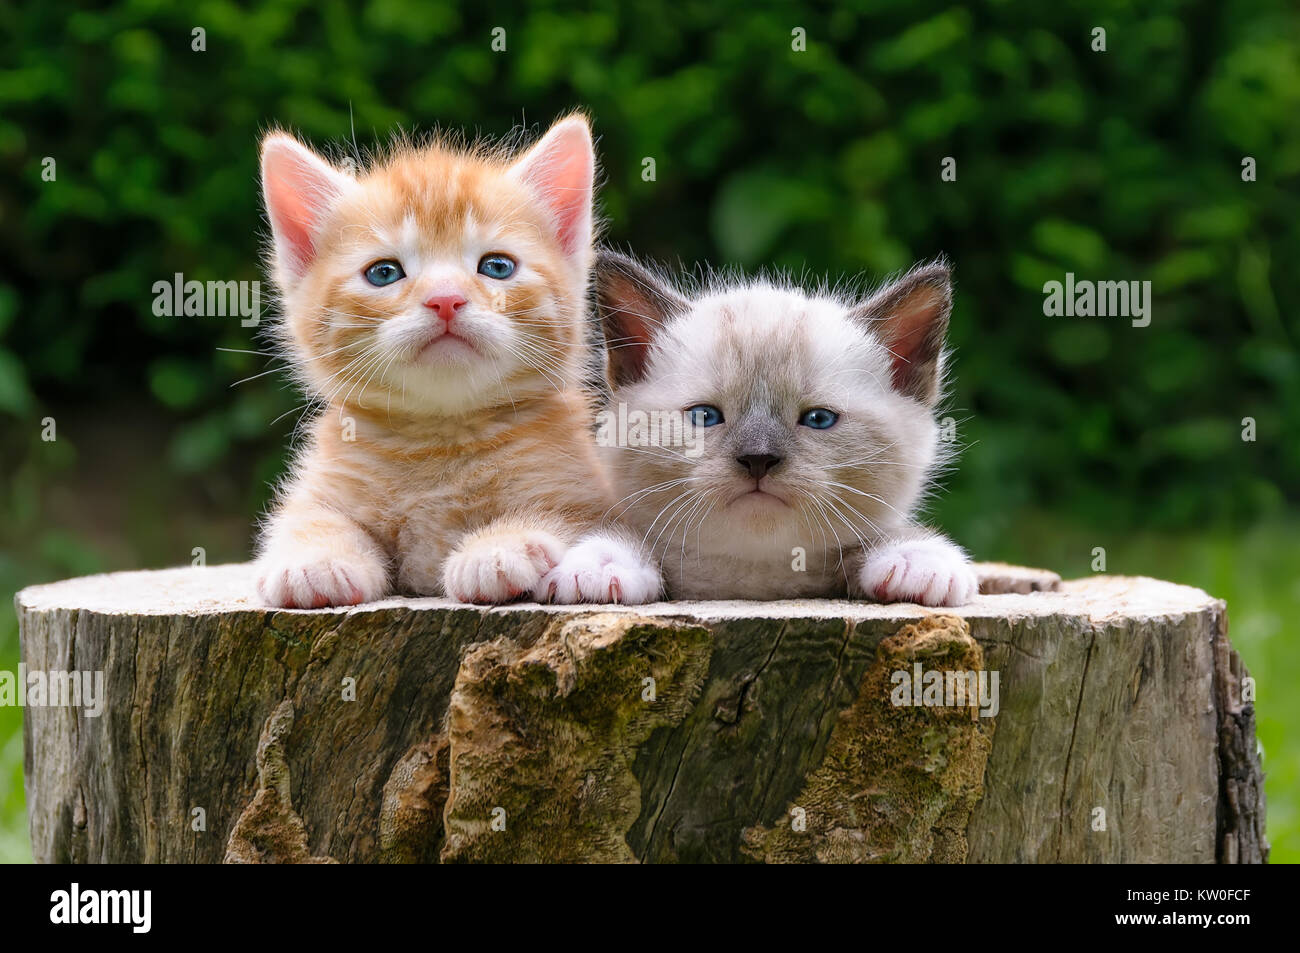 Two Cute Baby Cat Kittens Side By Side Watching Curiously In A Stock